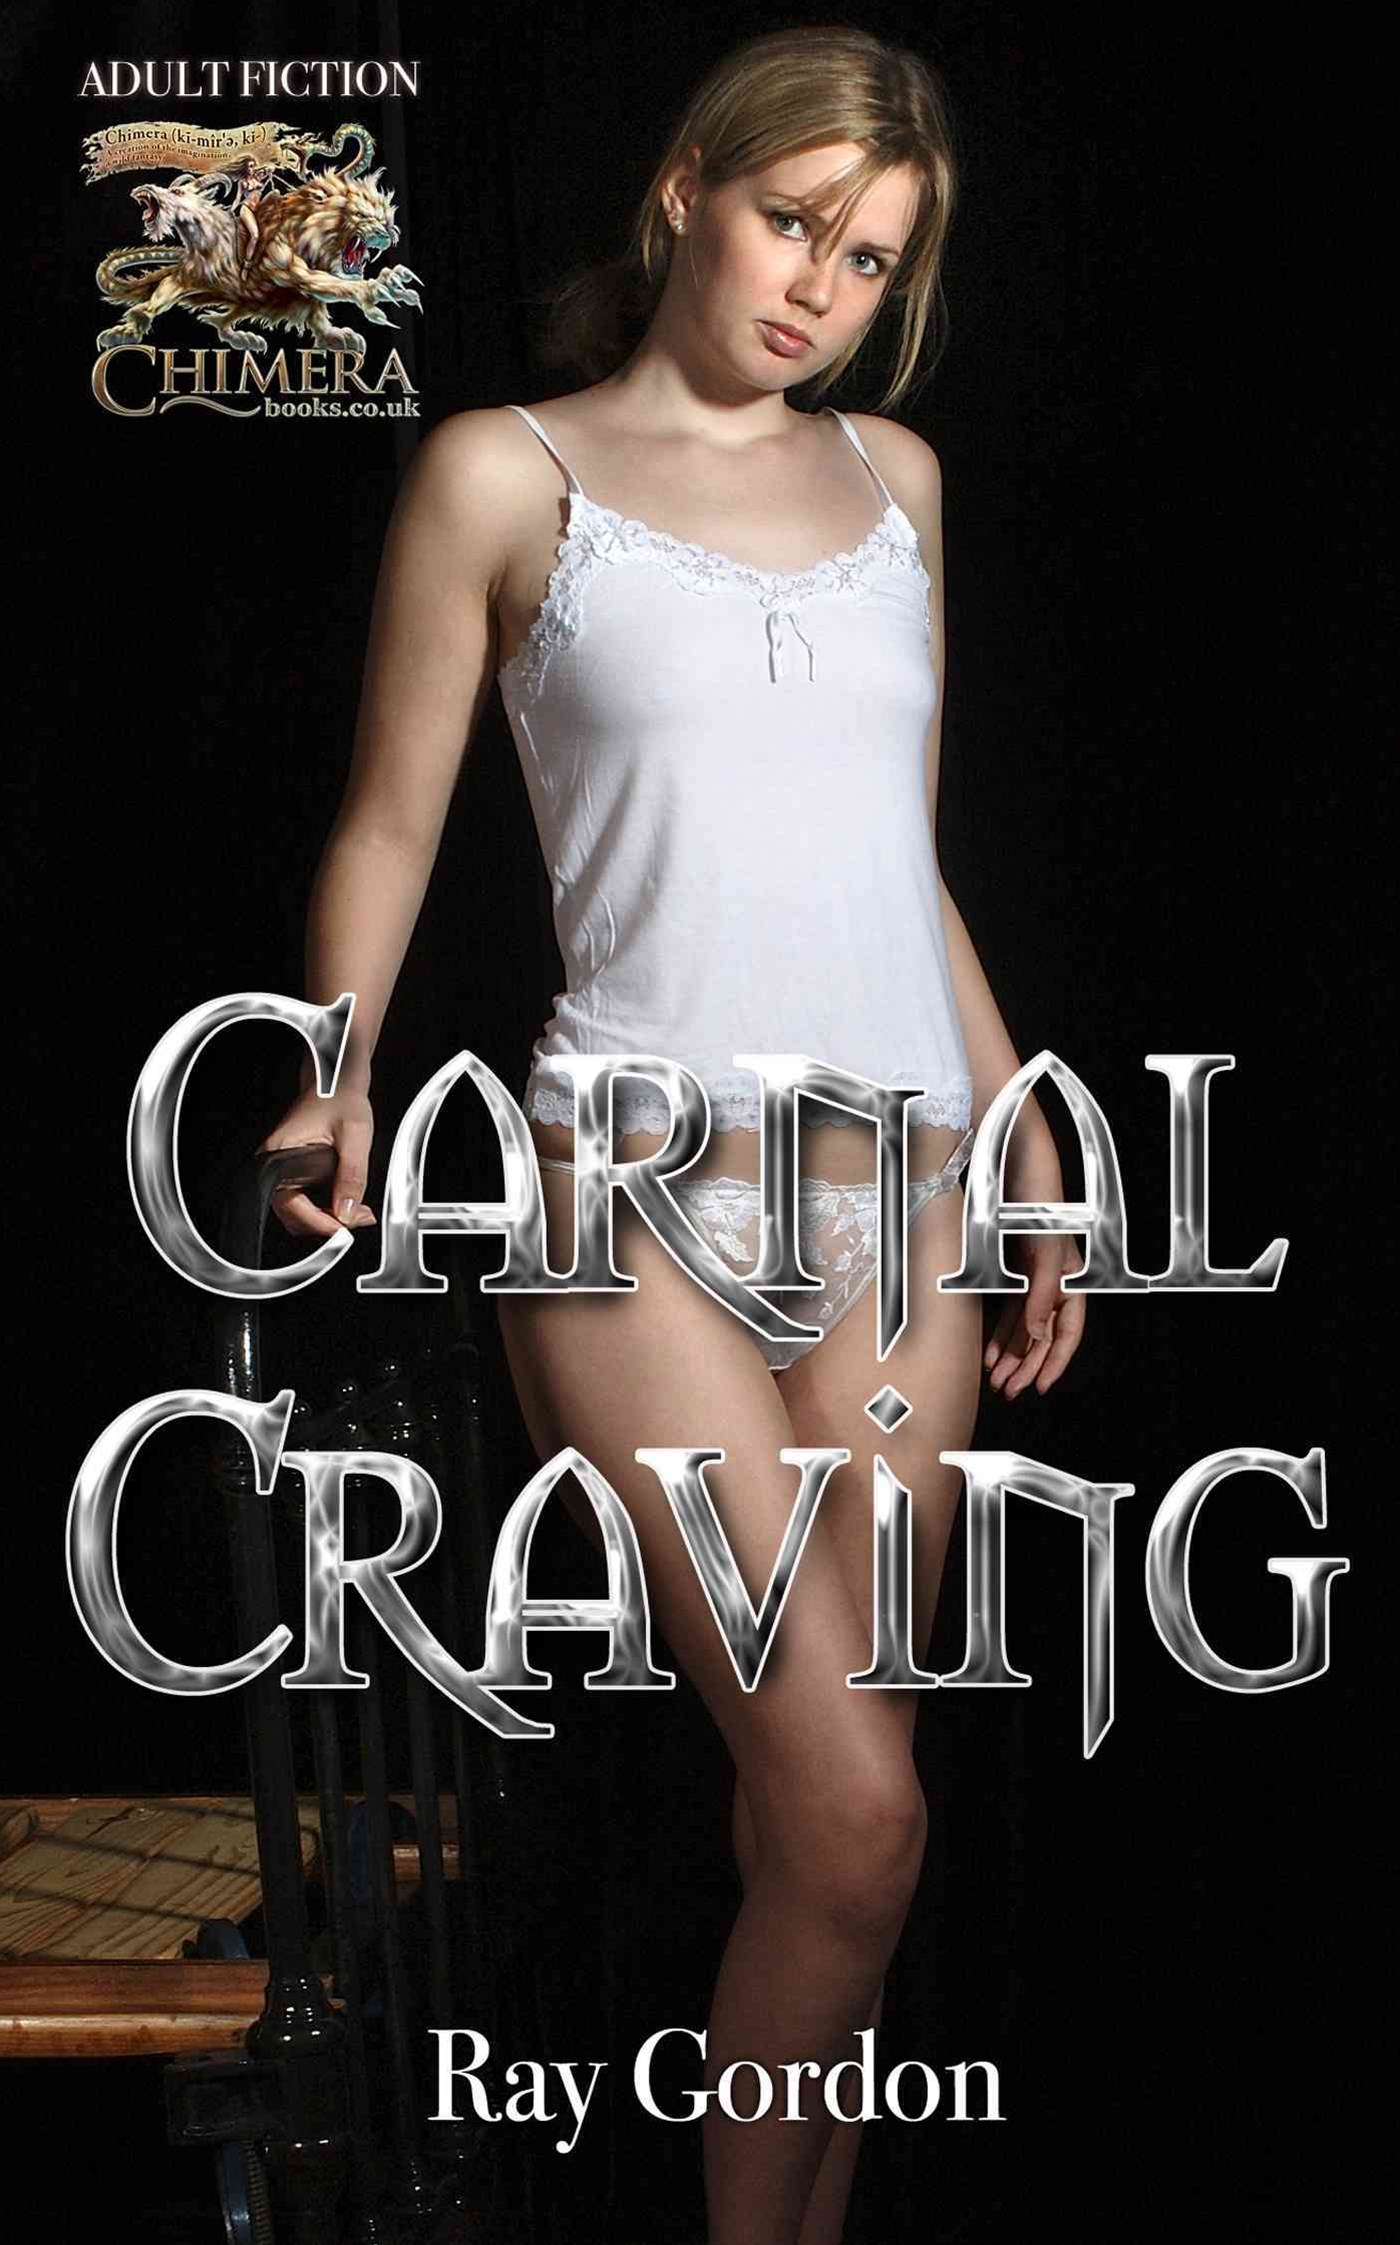 Carnal Craving